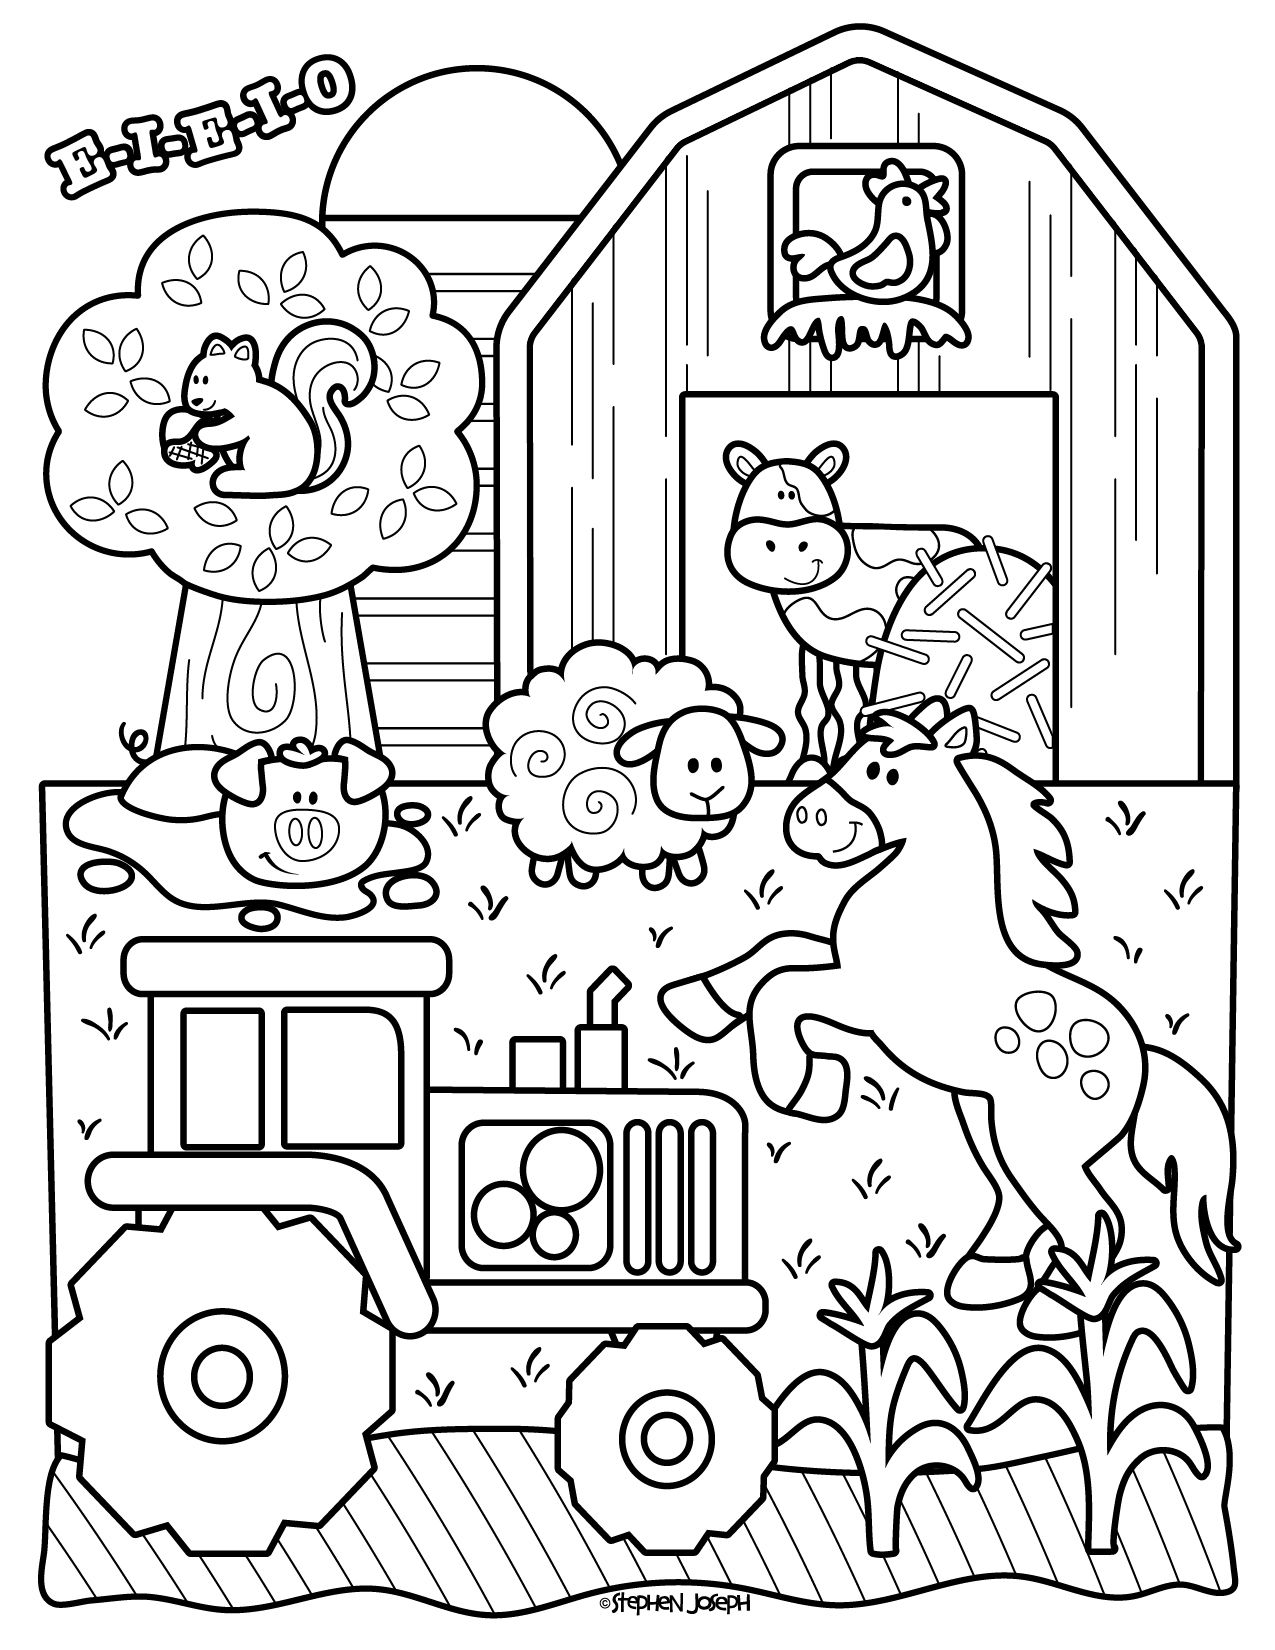 Farm Coloring Page Printable Free By Stephen Joseph Gifts